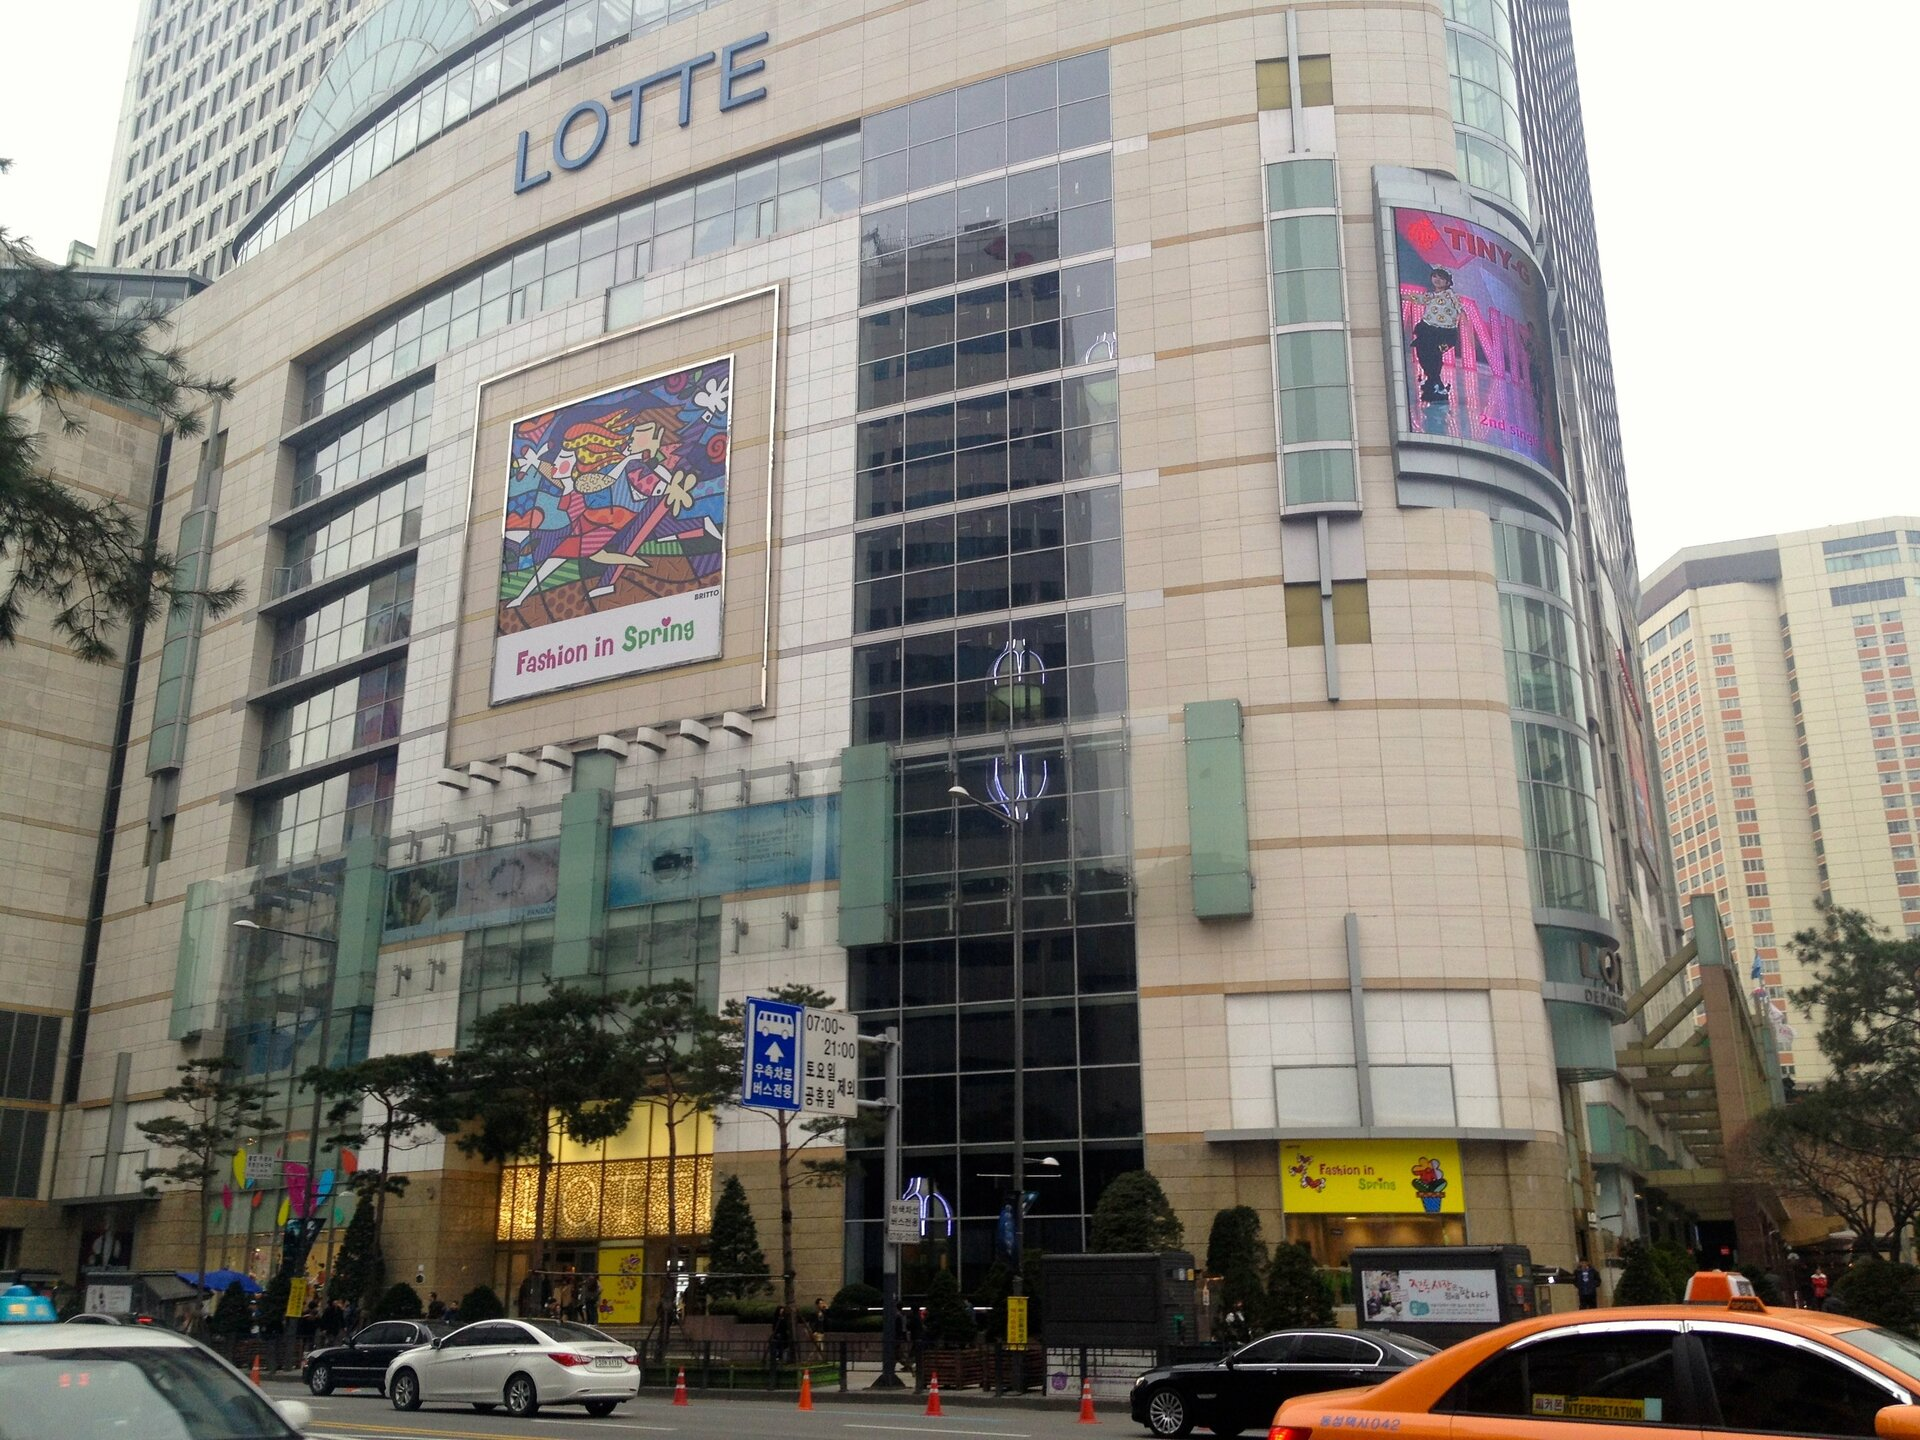 Lotte Department Store, Seoul